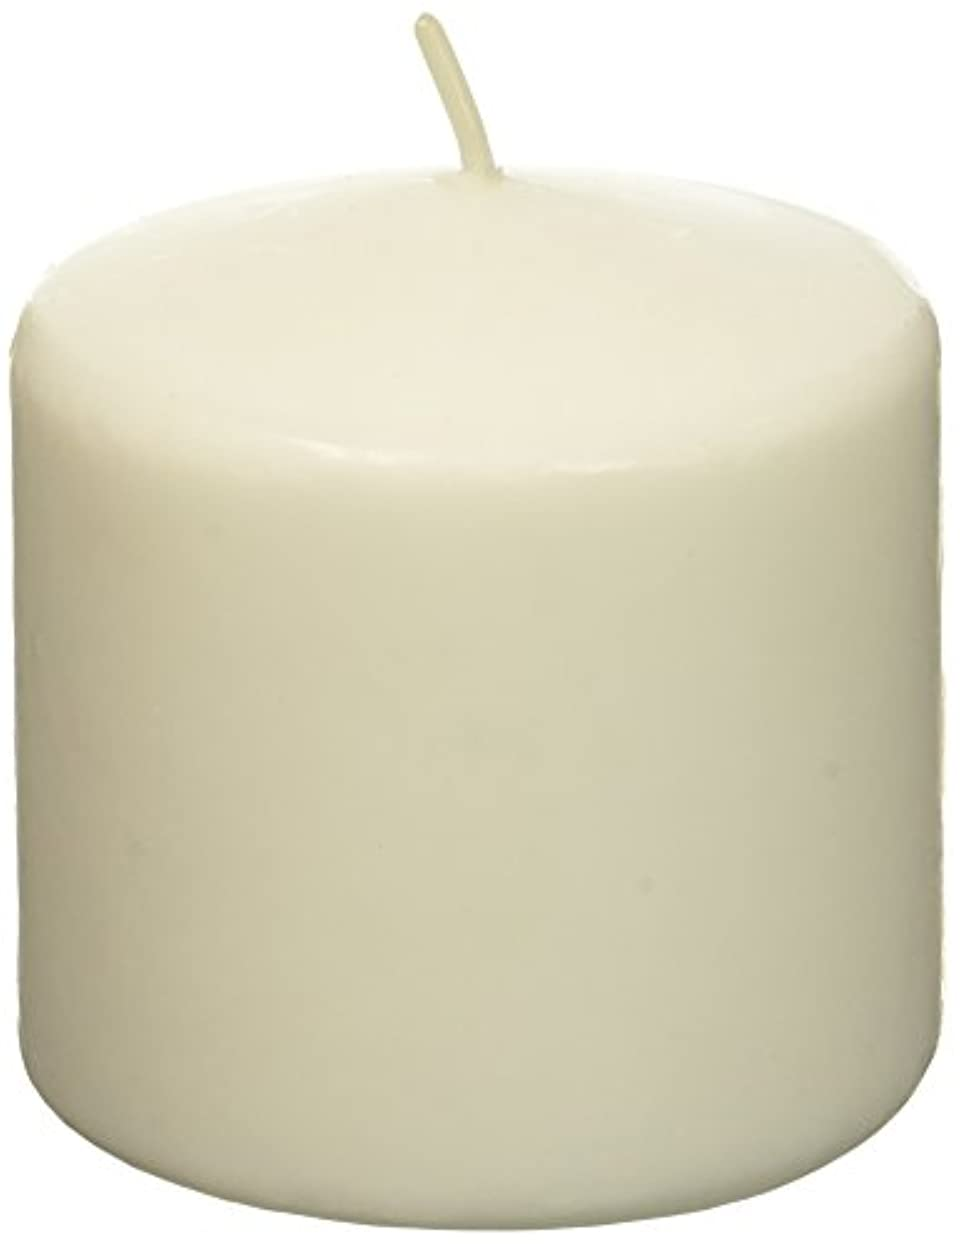 アナロジー疾患錆びZest Candle CPZ-007-12 3 x 3 in. White Pillar Candles -12pcs-Case- Bulk